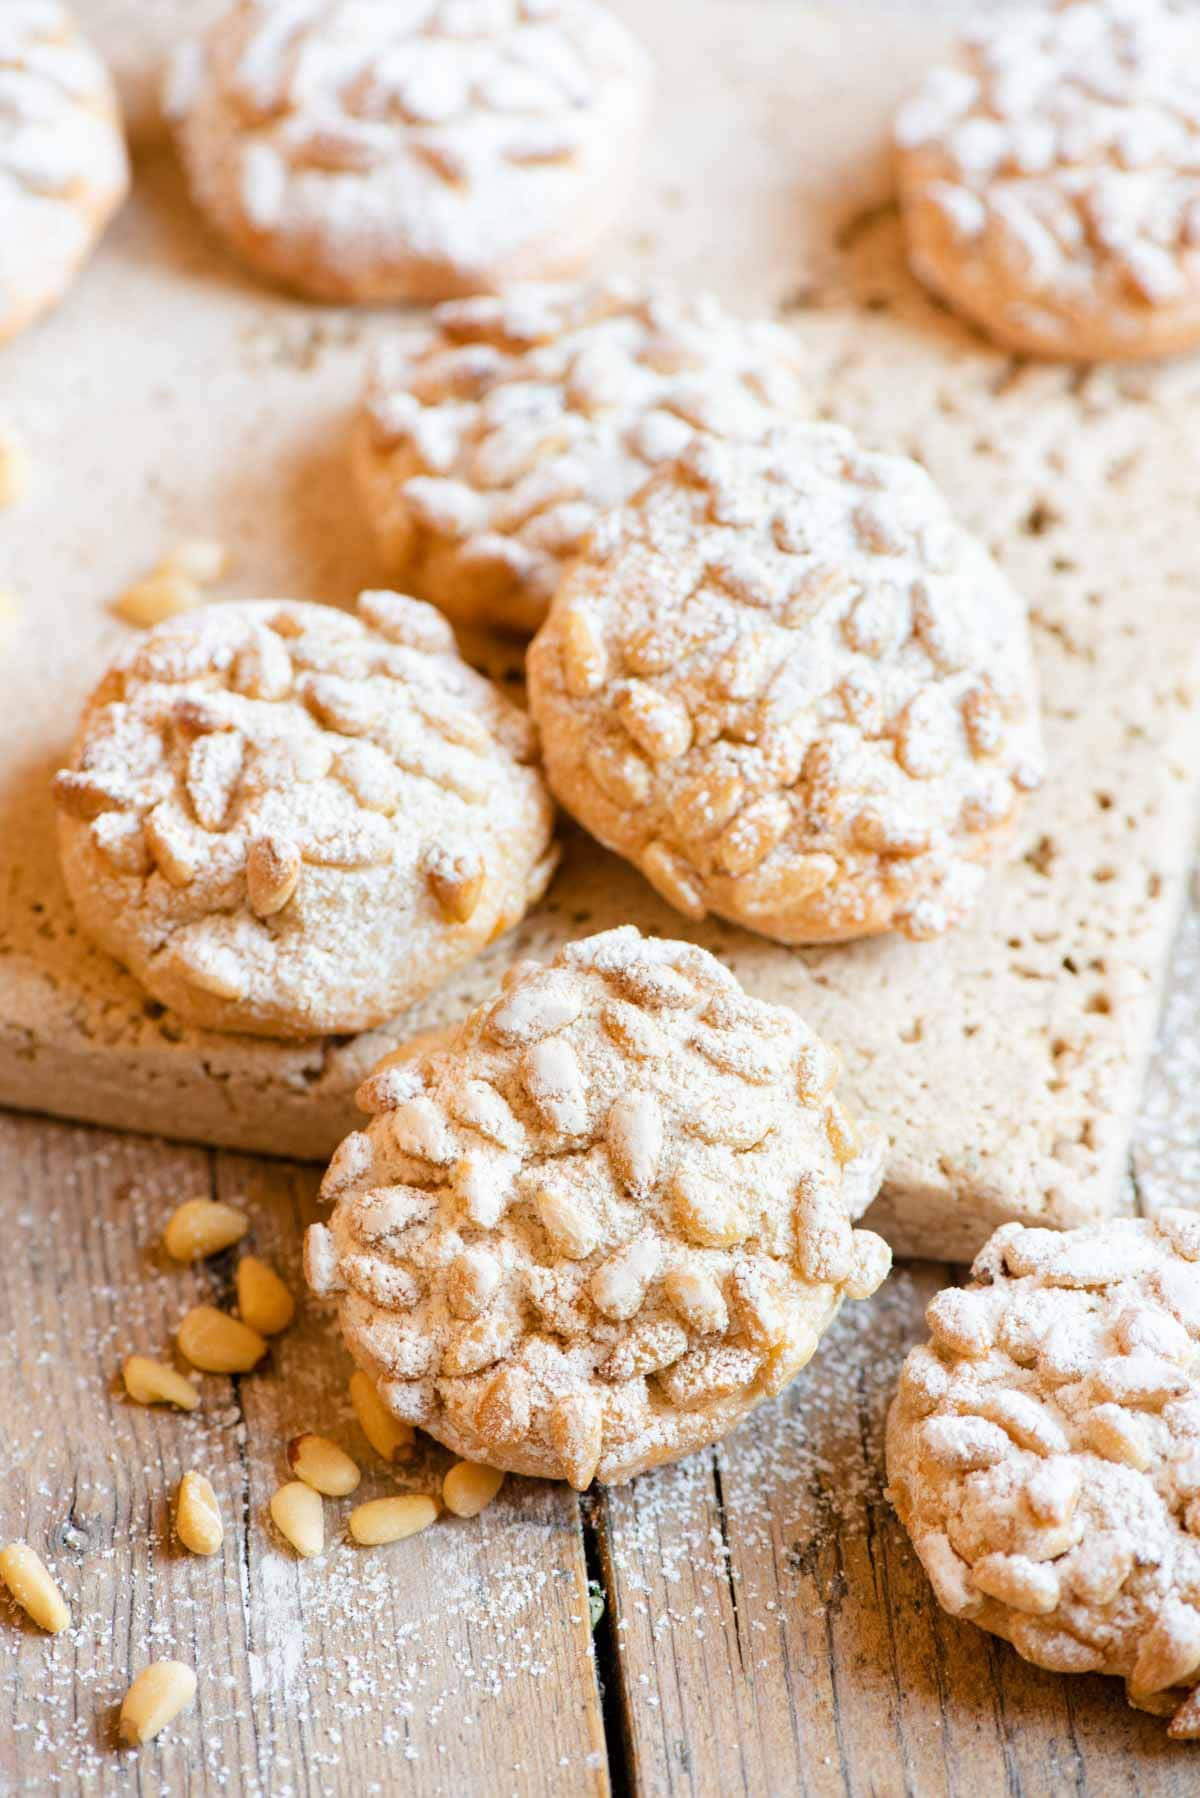 Pignoli cookies on a wooden surface dusted with powdered sugar